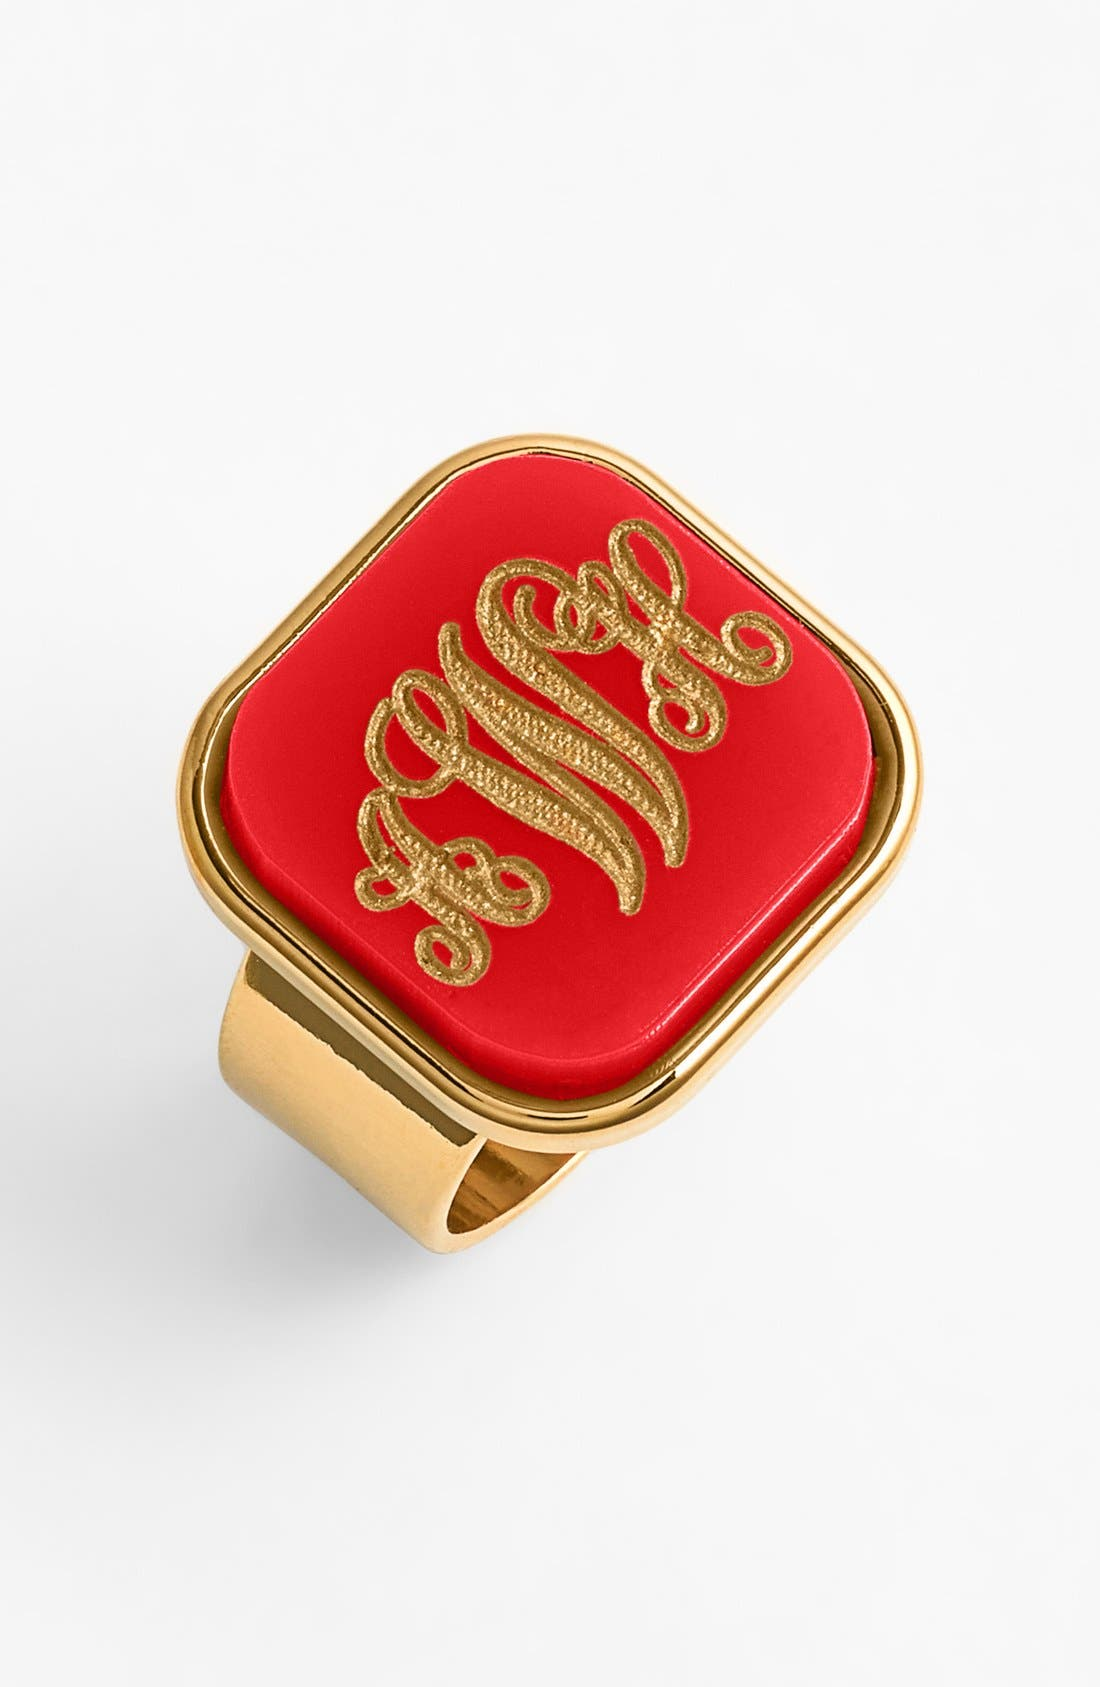 MOON AND LOLA 'Vineyard' Personalized Monogram Ring in Ruby